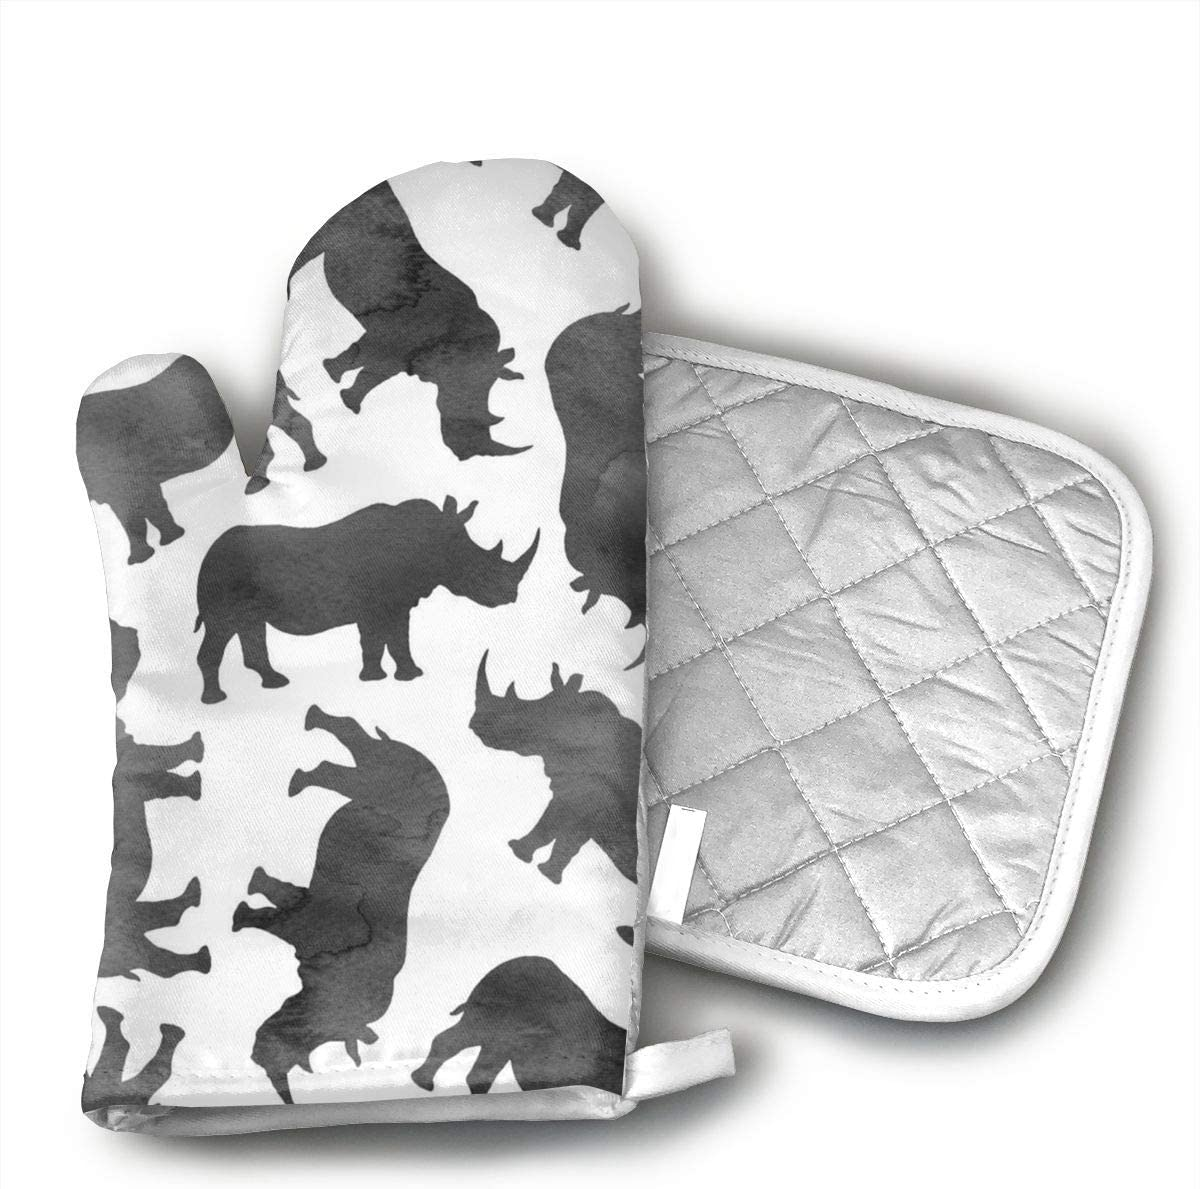 Wiqo9 Watercolor Rhinos Oven Mitts and Pot Holders Kitchen Mitten Cooking Gloves,Cooking, Baking, BBQ.